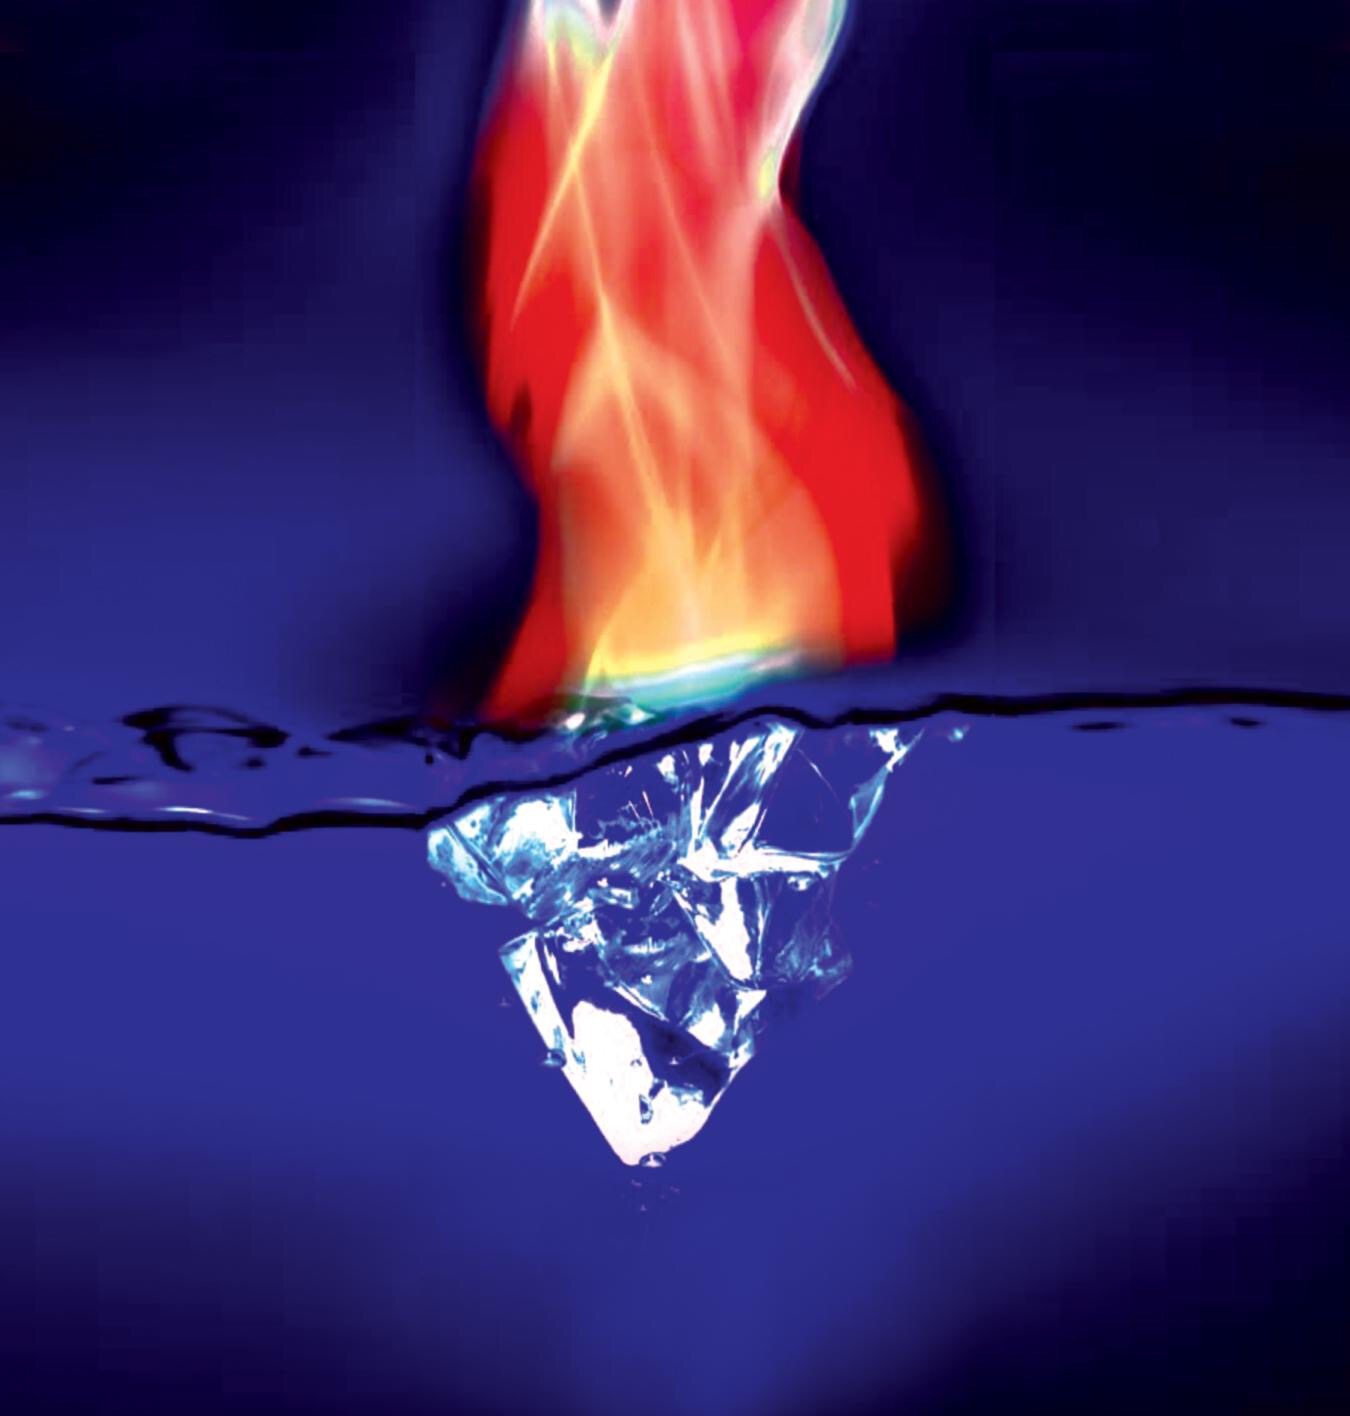 Free Essays and Term Papers For Students: Essay on Fire and Ice by ...